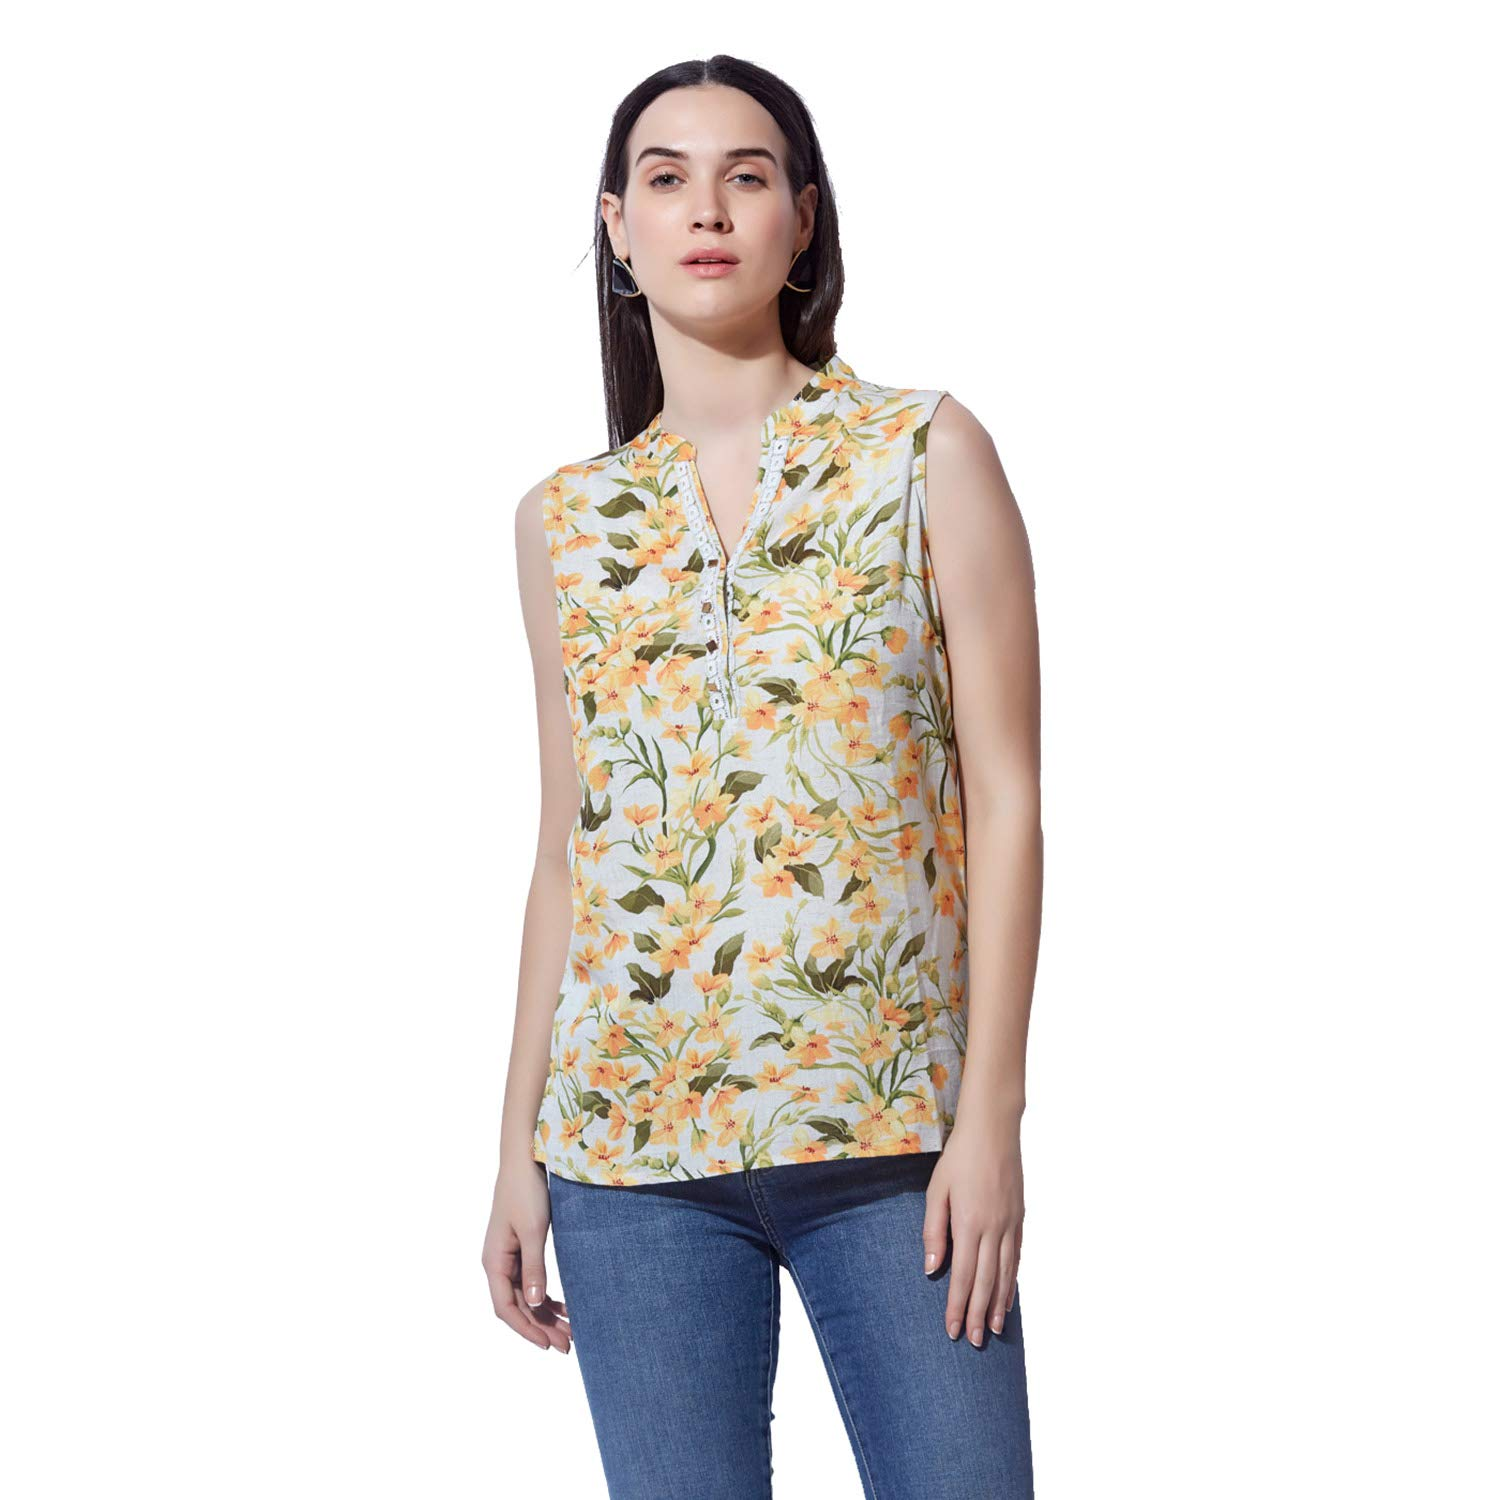 89ee37ecf349 BKind Women's Floral Print Cotton Off White Tunic: Amazon.in: Clothing &  Accessories